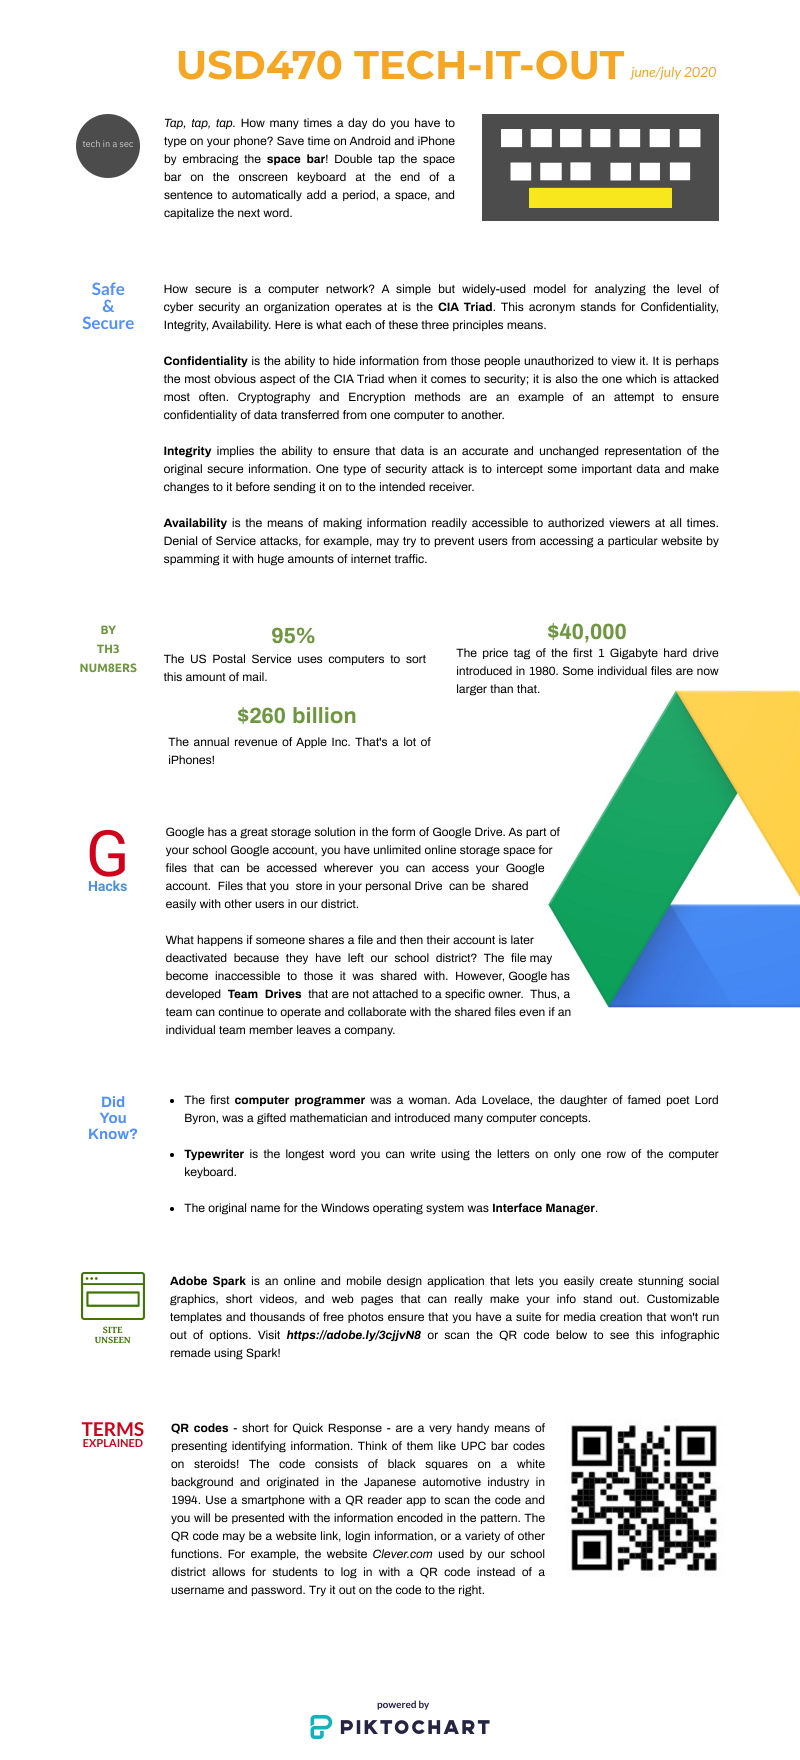 Tech It Out Infographic for June/July 2020